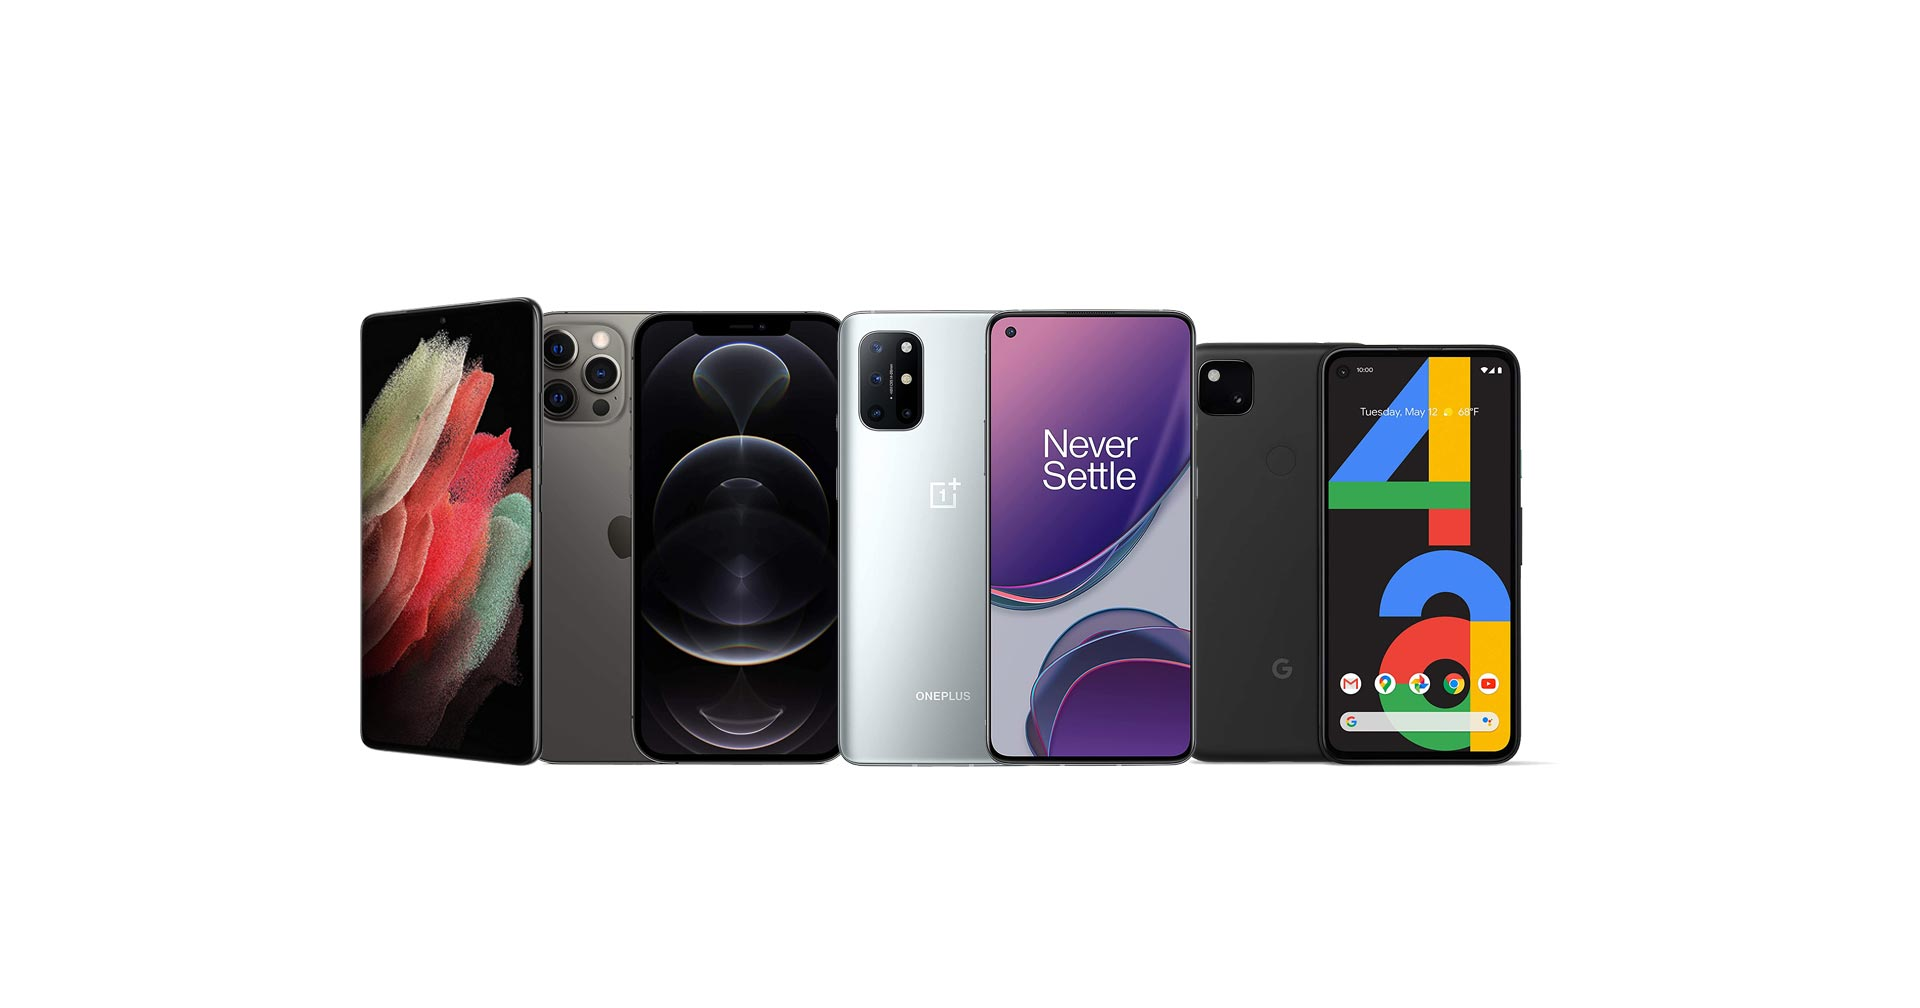 The Best Camera Phones For Every Budget In 2021